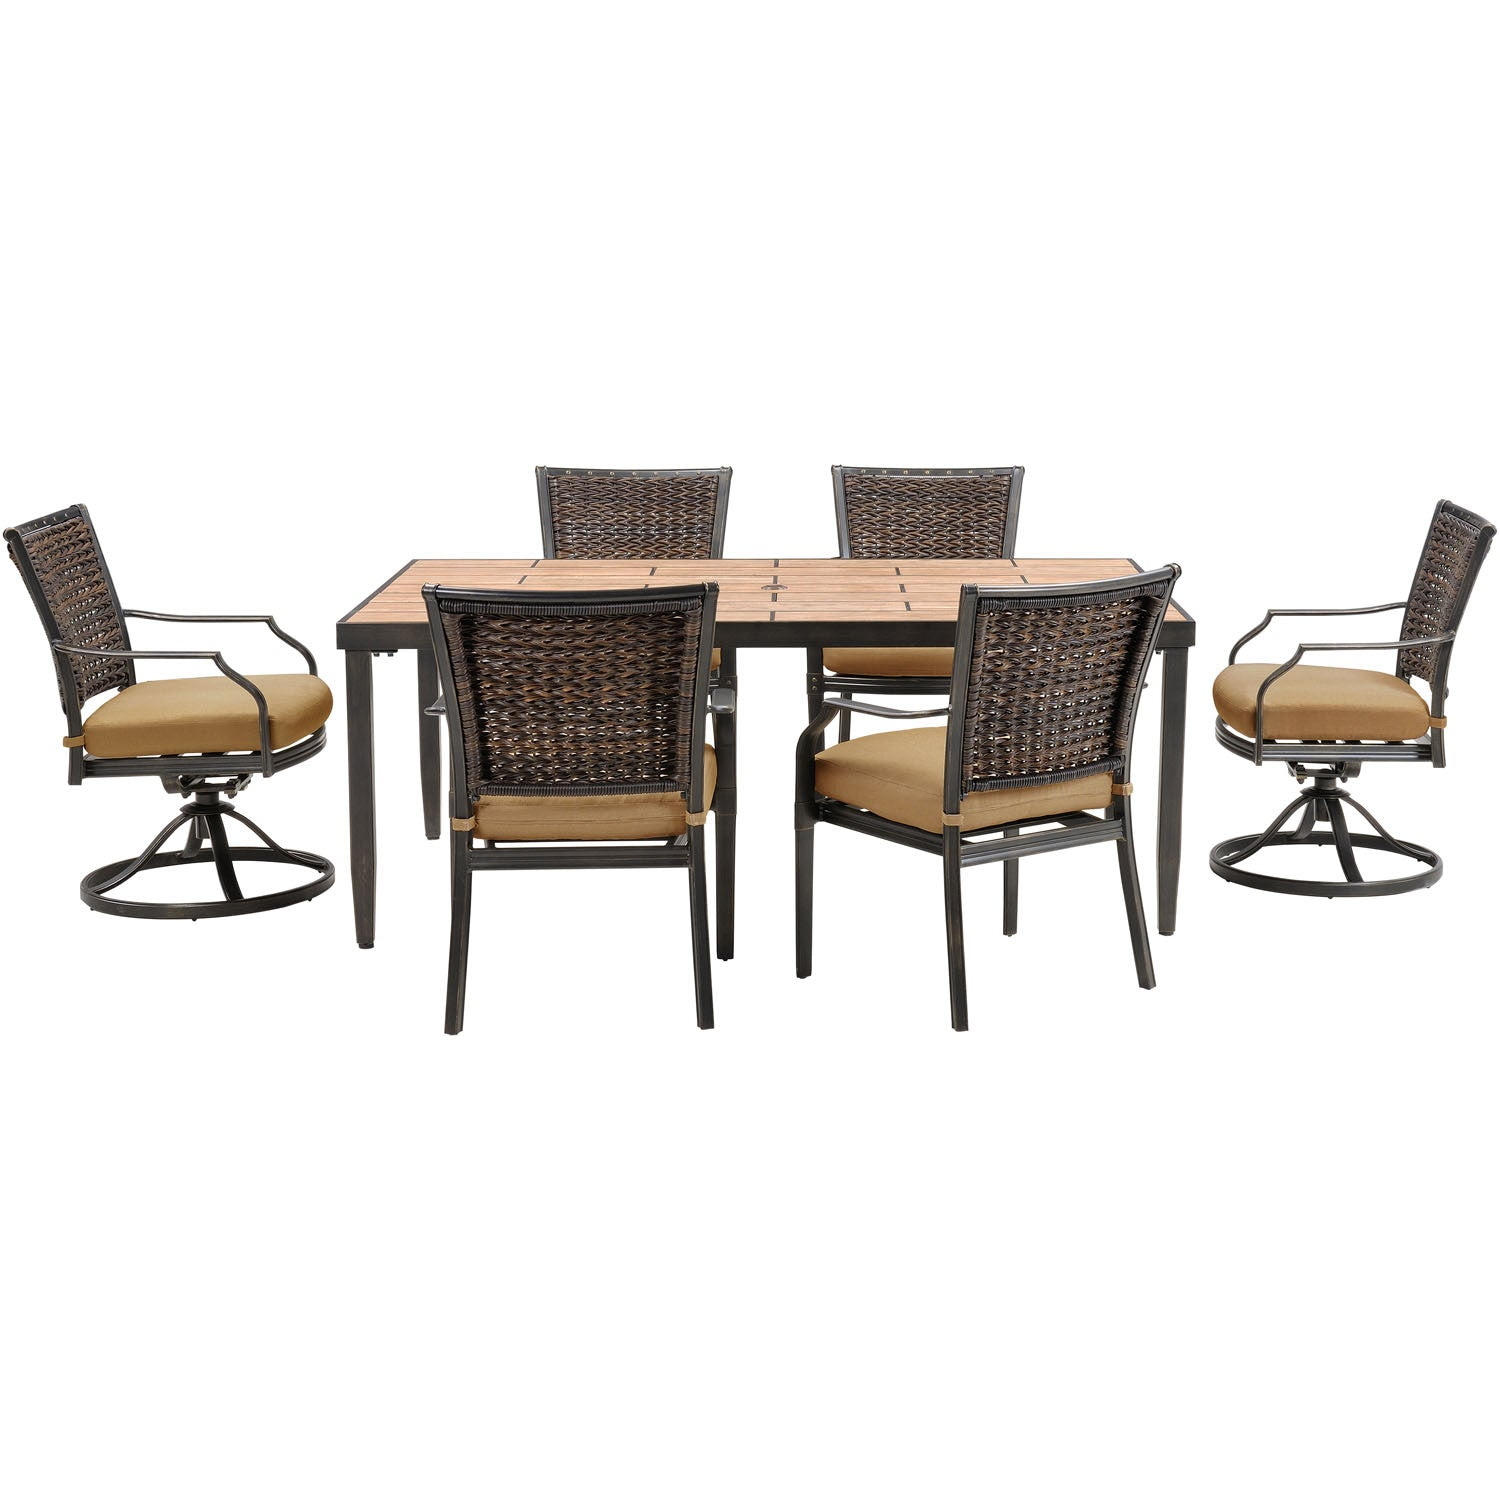 Magnificent Mercer7Pc Dining Set Porcelain Tile Top Table 2 Swivel Chairs 4 Dining Chairs Mercdn7Pcsw Tan Tile Tan Squirreltailoven Fun Painted Chair Ideas Images Squirreltailovenorg